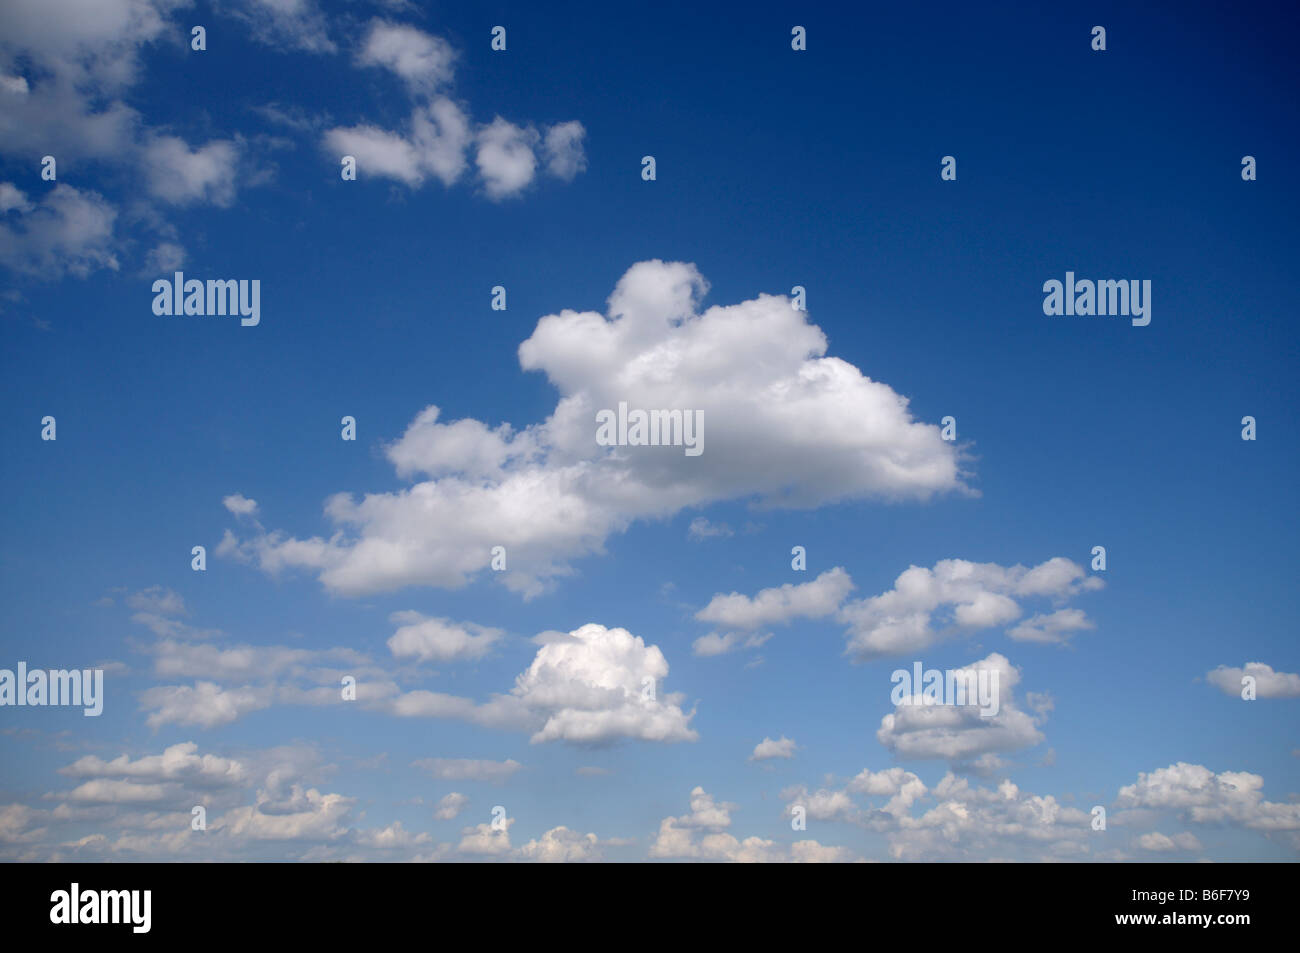 Fluffy white clouds in a blue sky - Stock Image